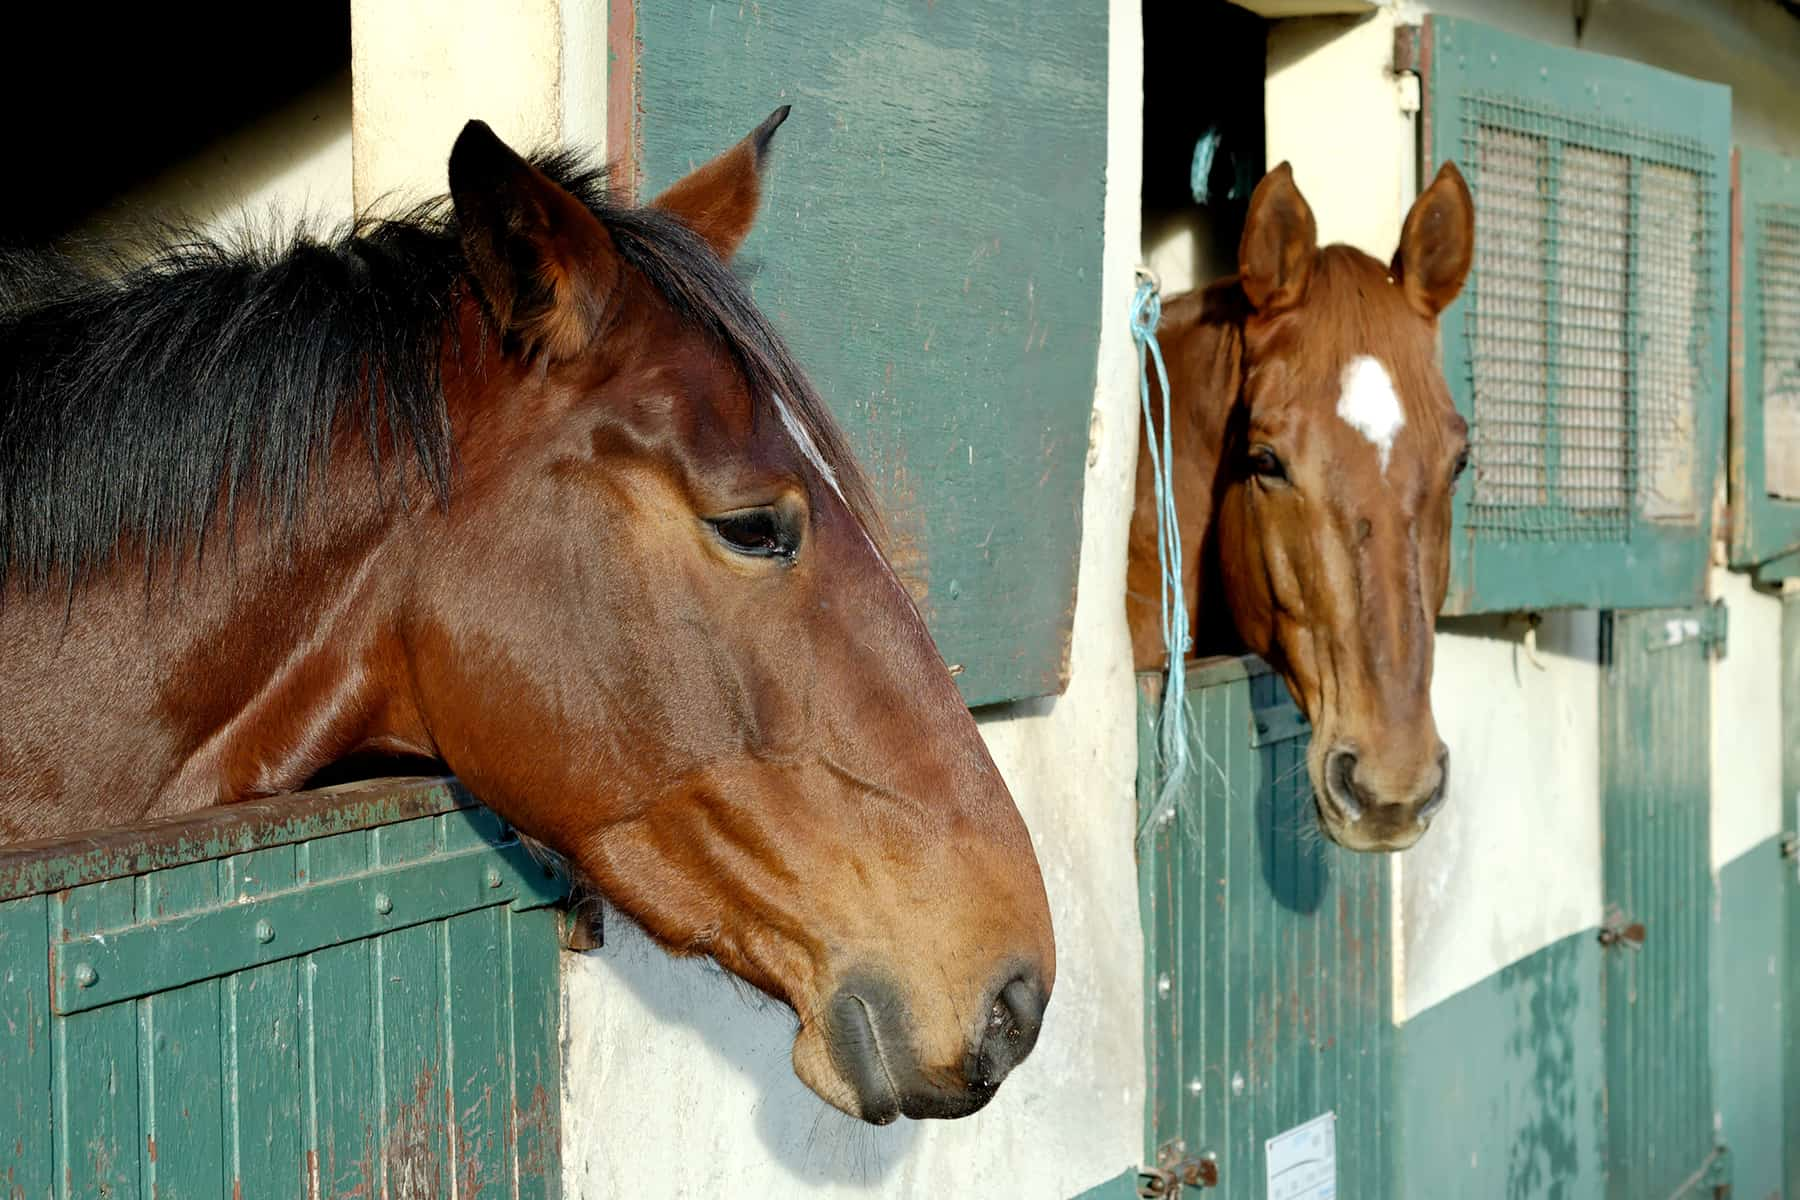 Happy and Unhappy Horses at Home – The Horse